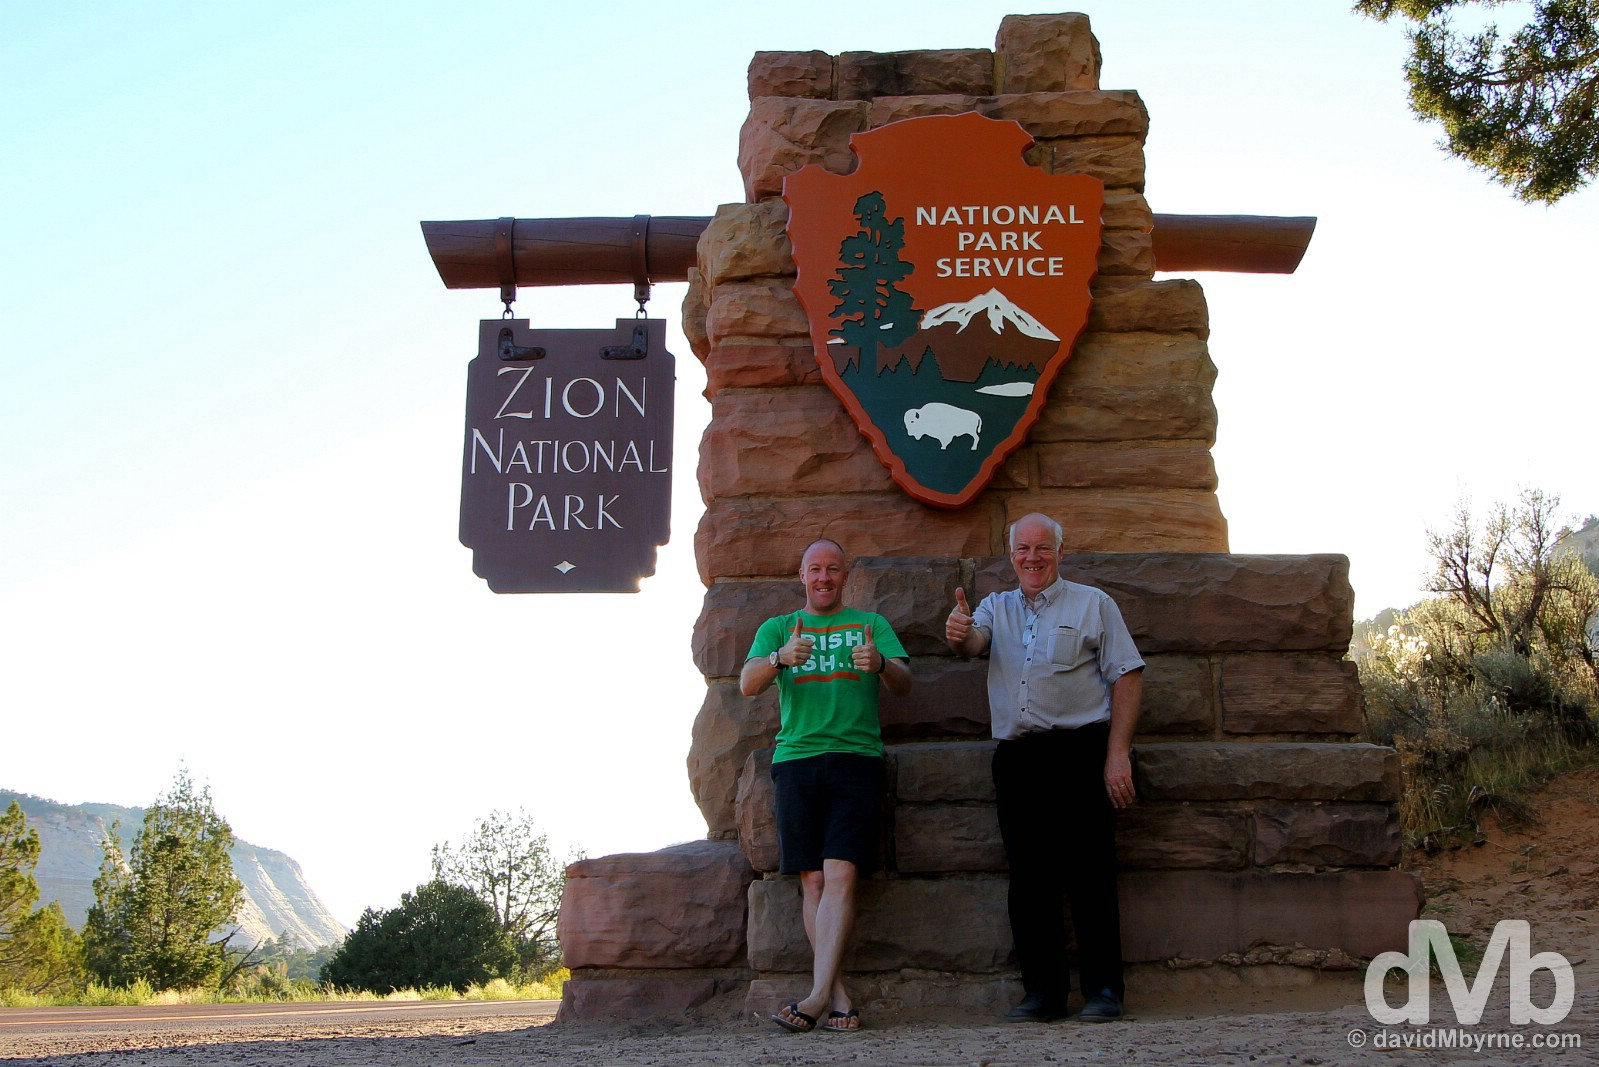 At the entrance to Zion National Park, southern Utah, USA. September 8, 2016.